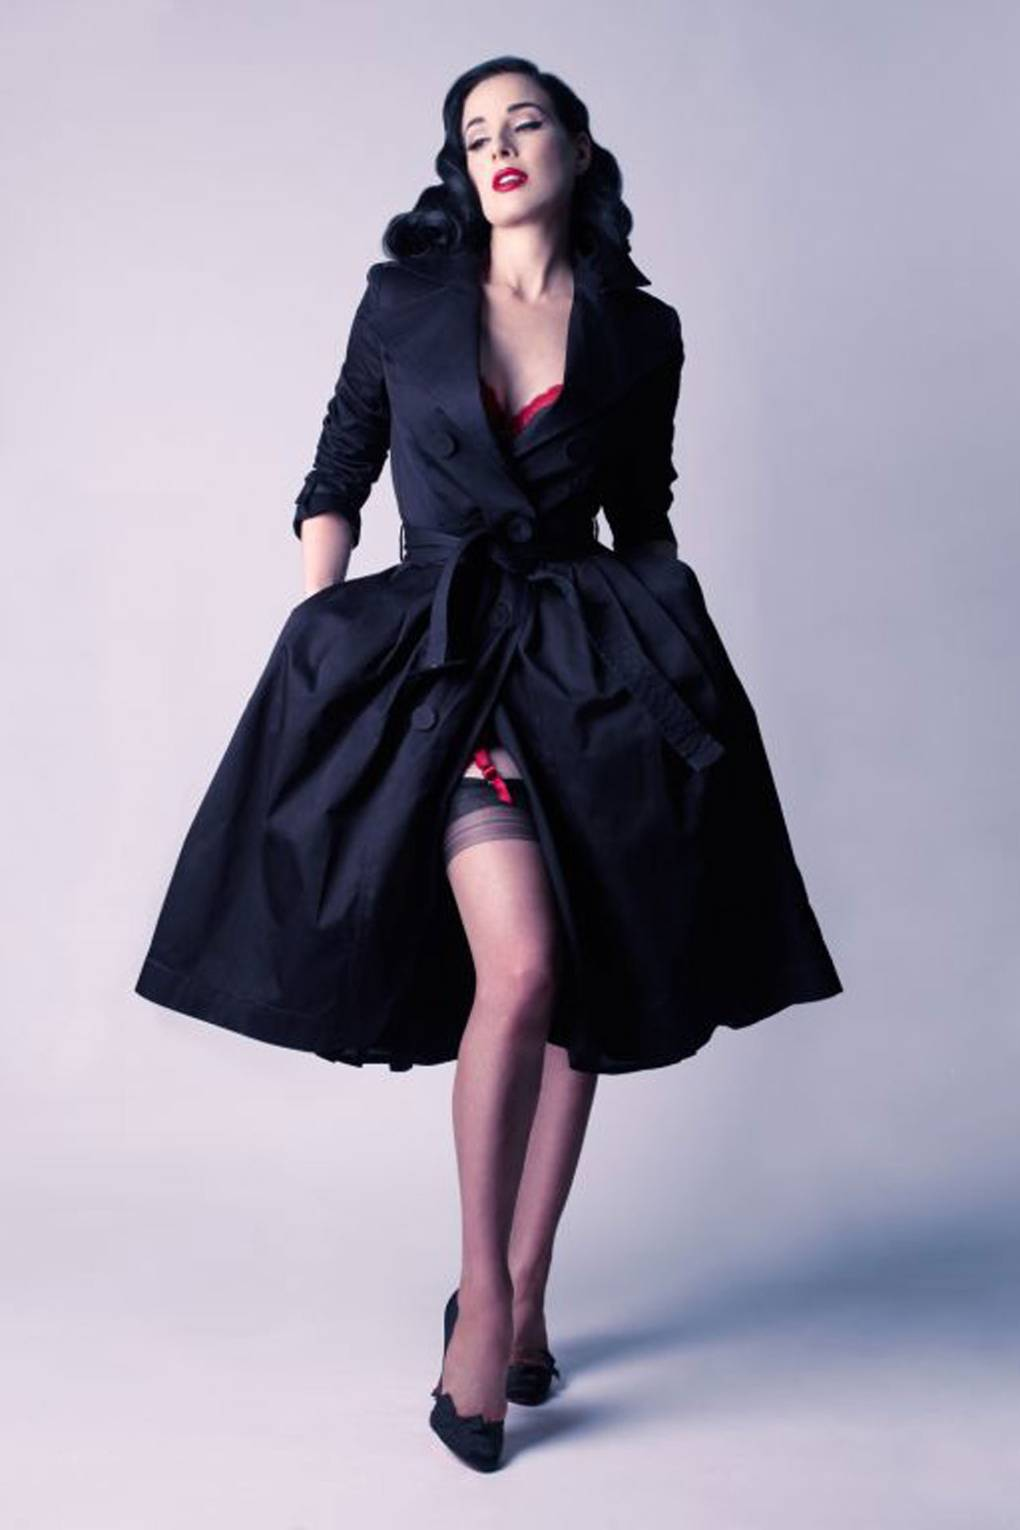 b16ccf9f4 Dita Von Teese Dresses Collection - Pictures And Interview